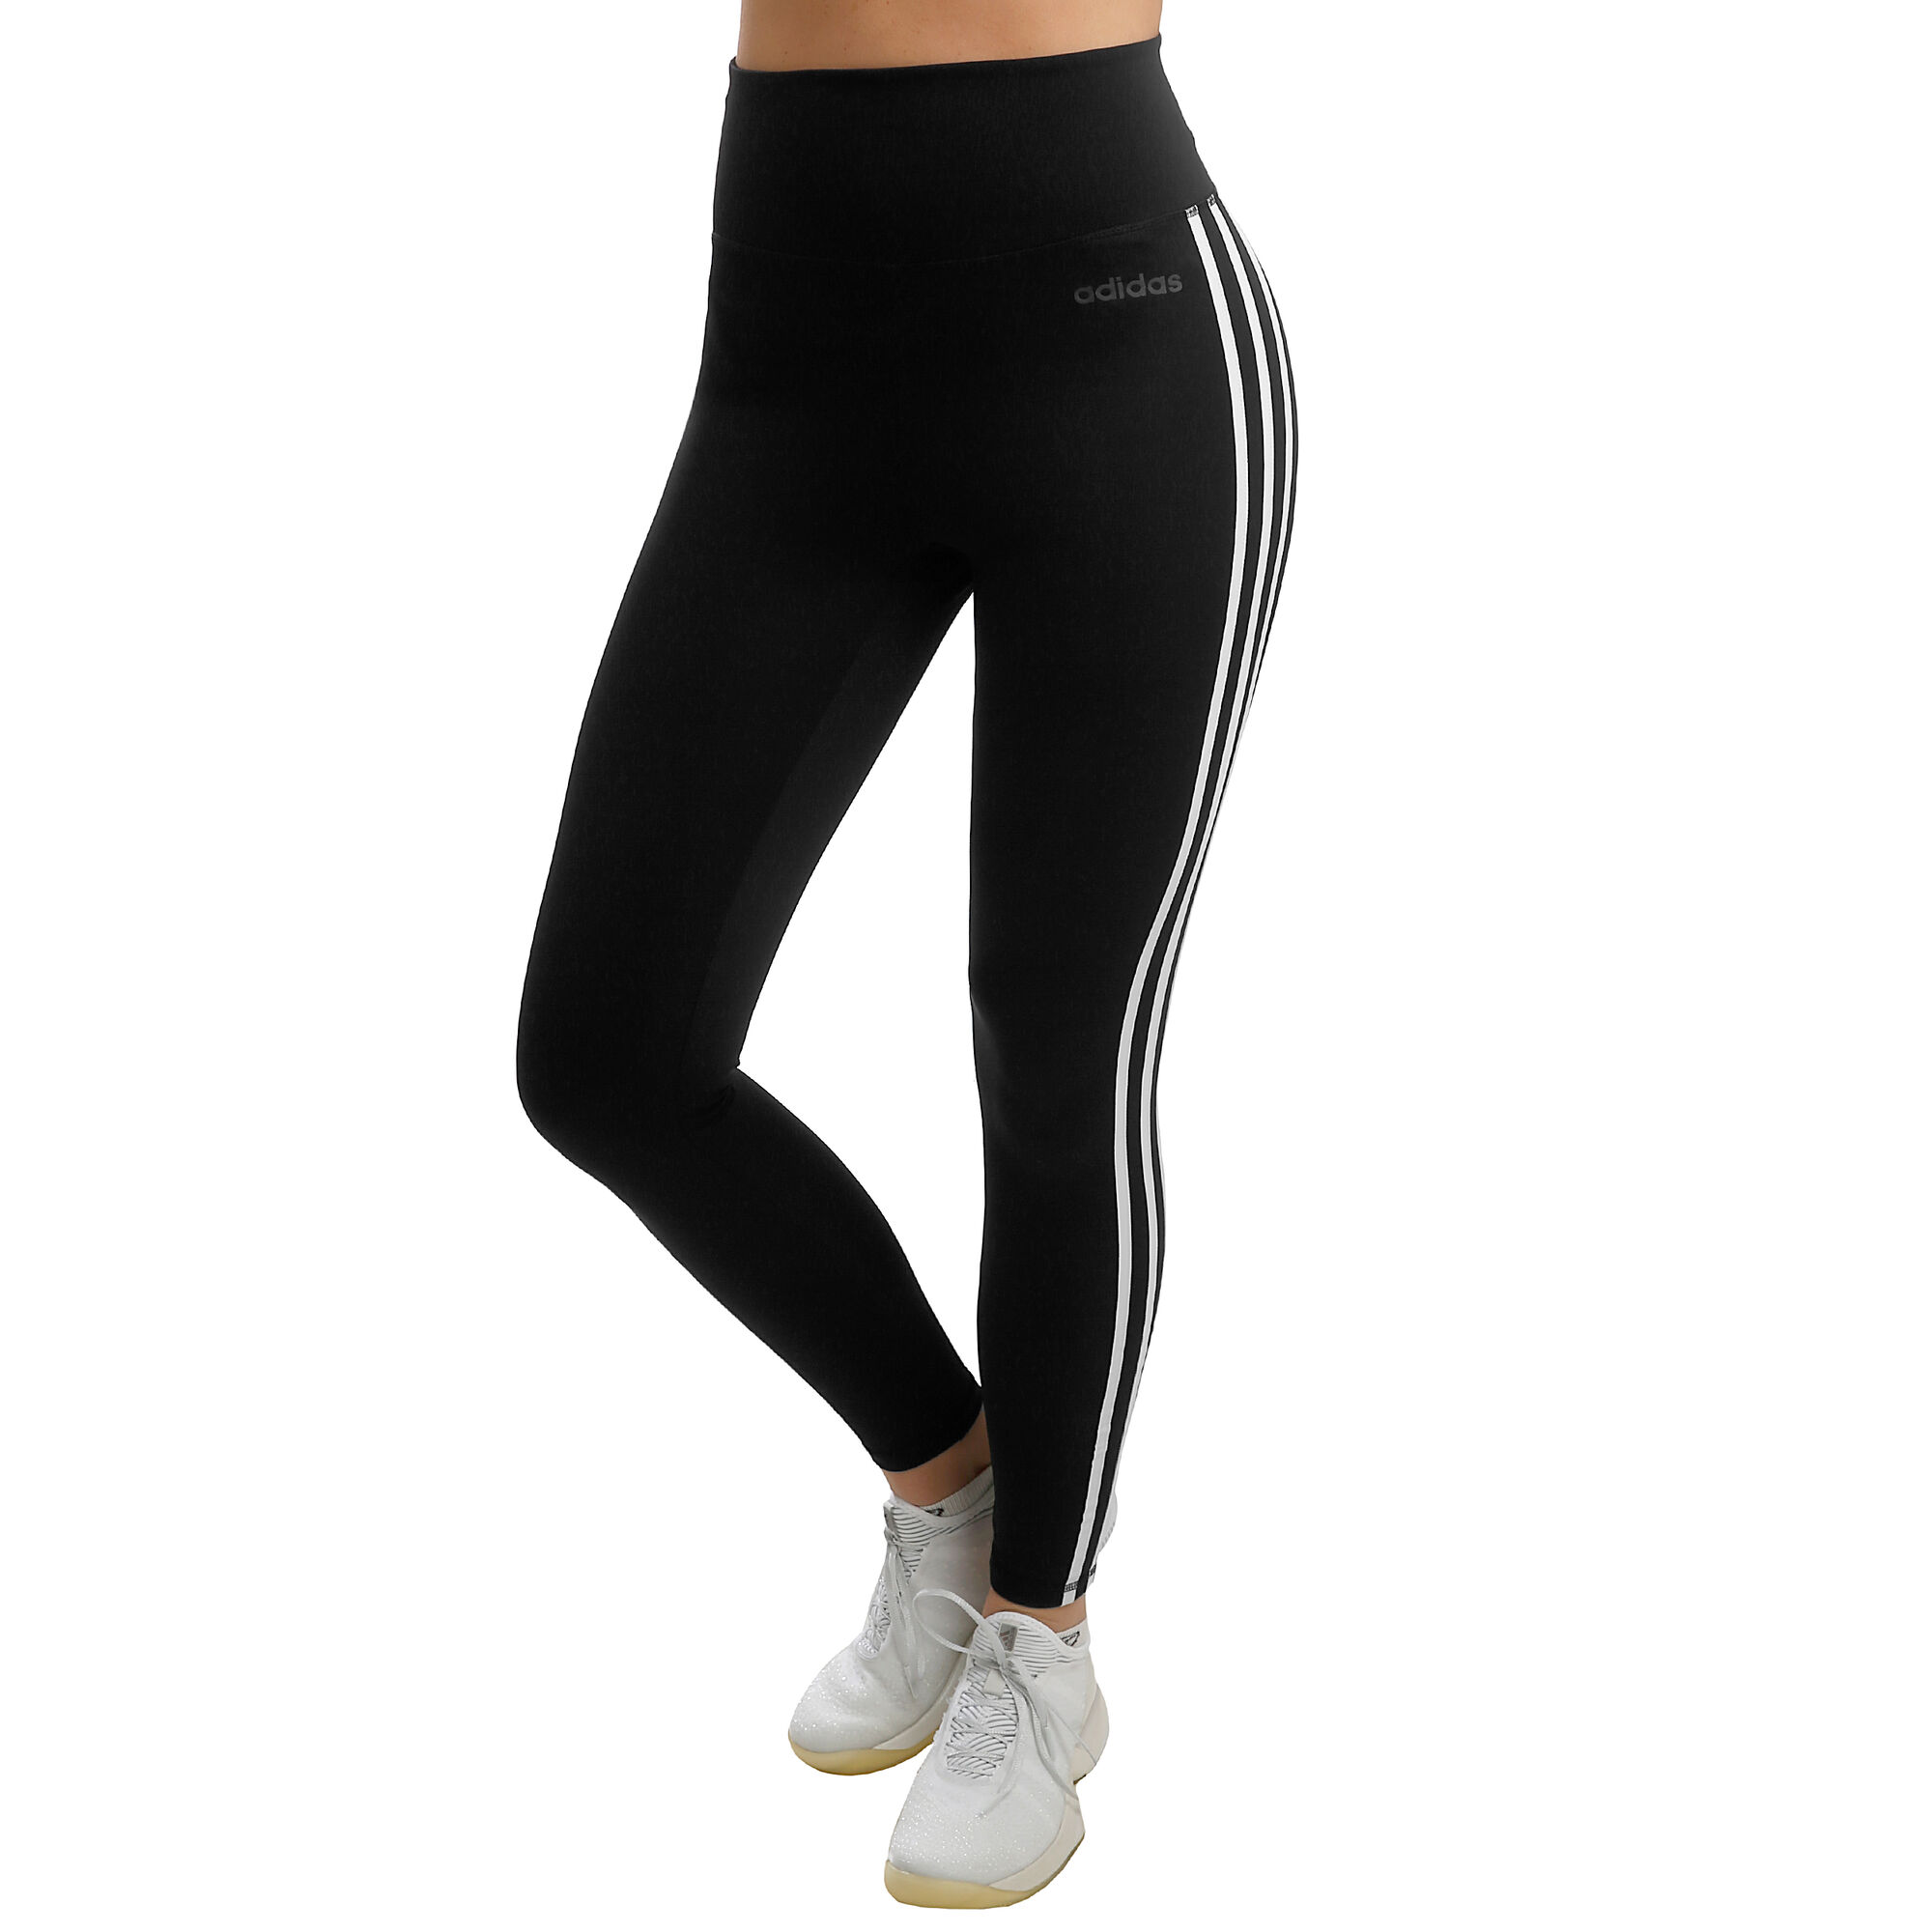 new products ef8c9 37b86 adidas · adidas · adidas · adidas · adidas · adidas · adidas · adidas ·  adidas · adidas. D2M High Rise 3 Stripes Tight ...